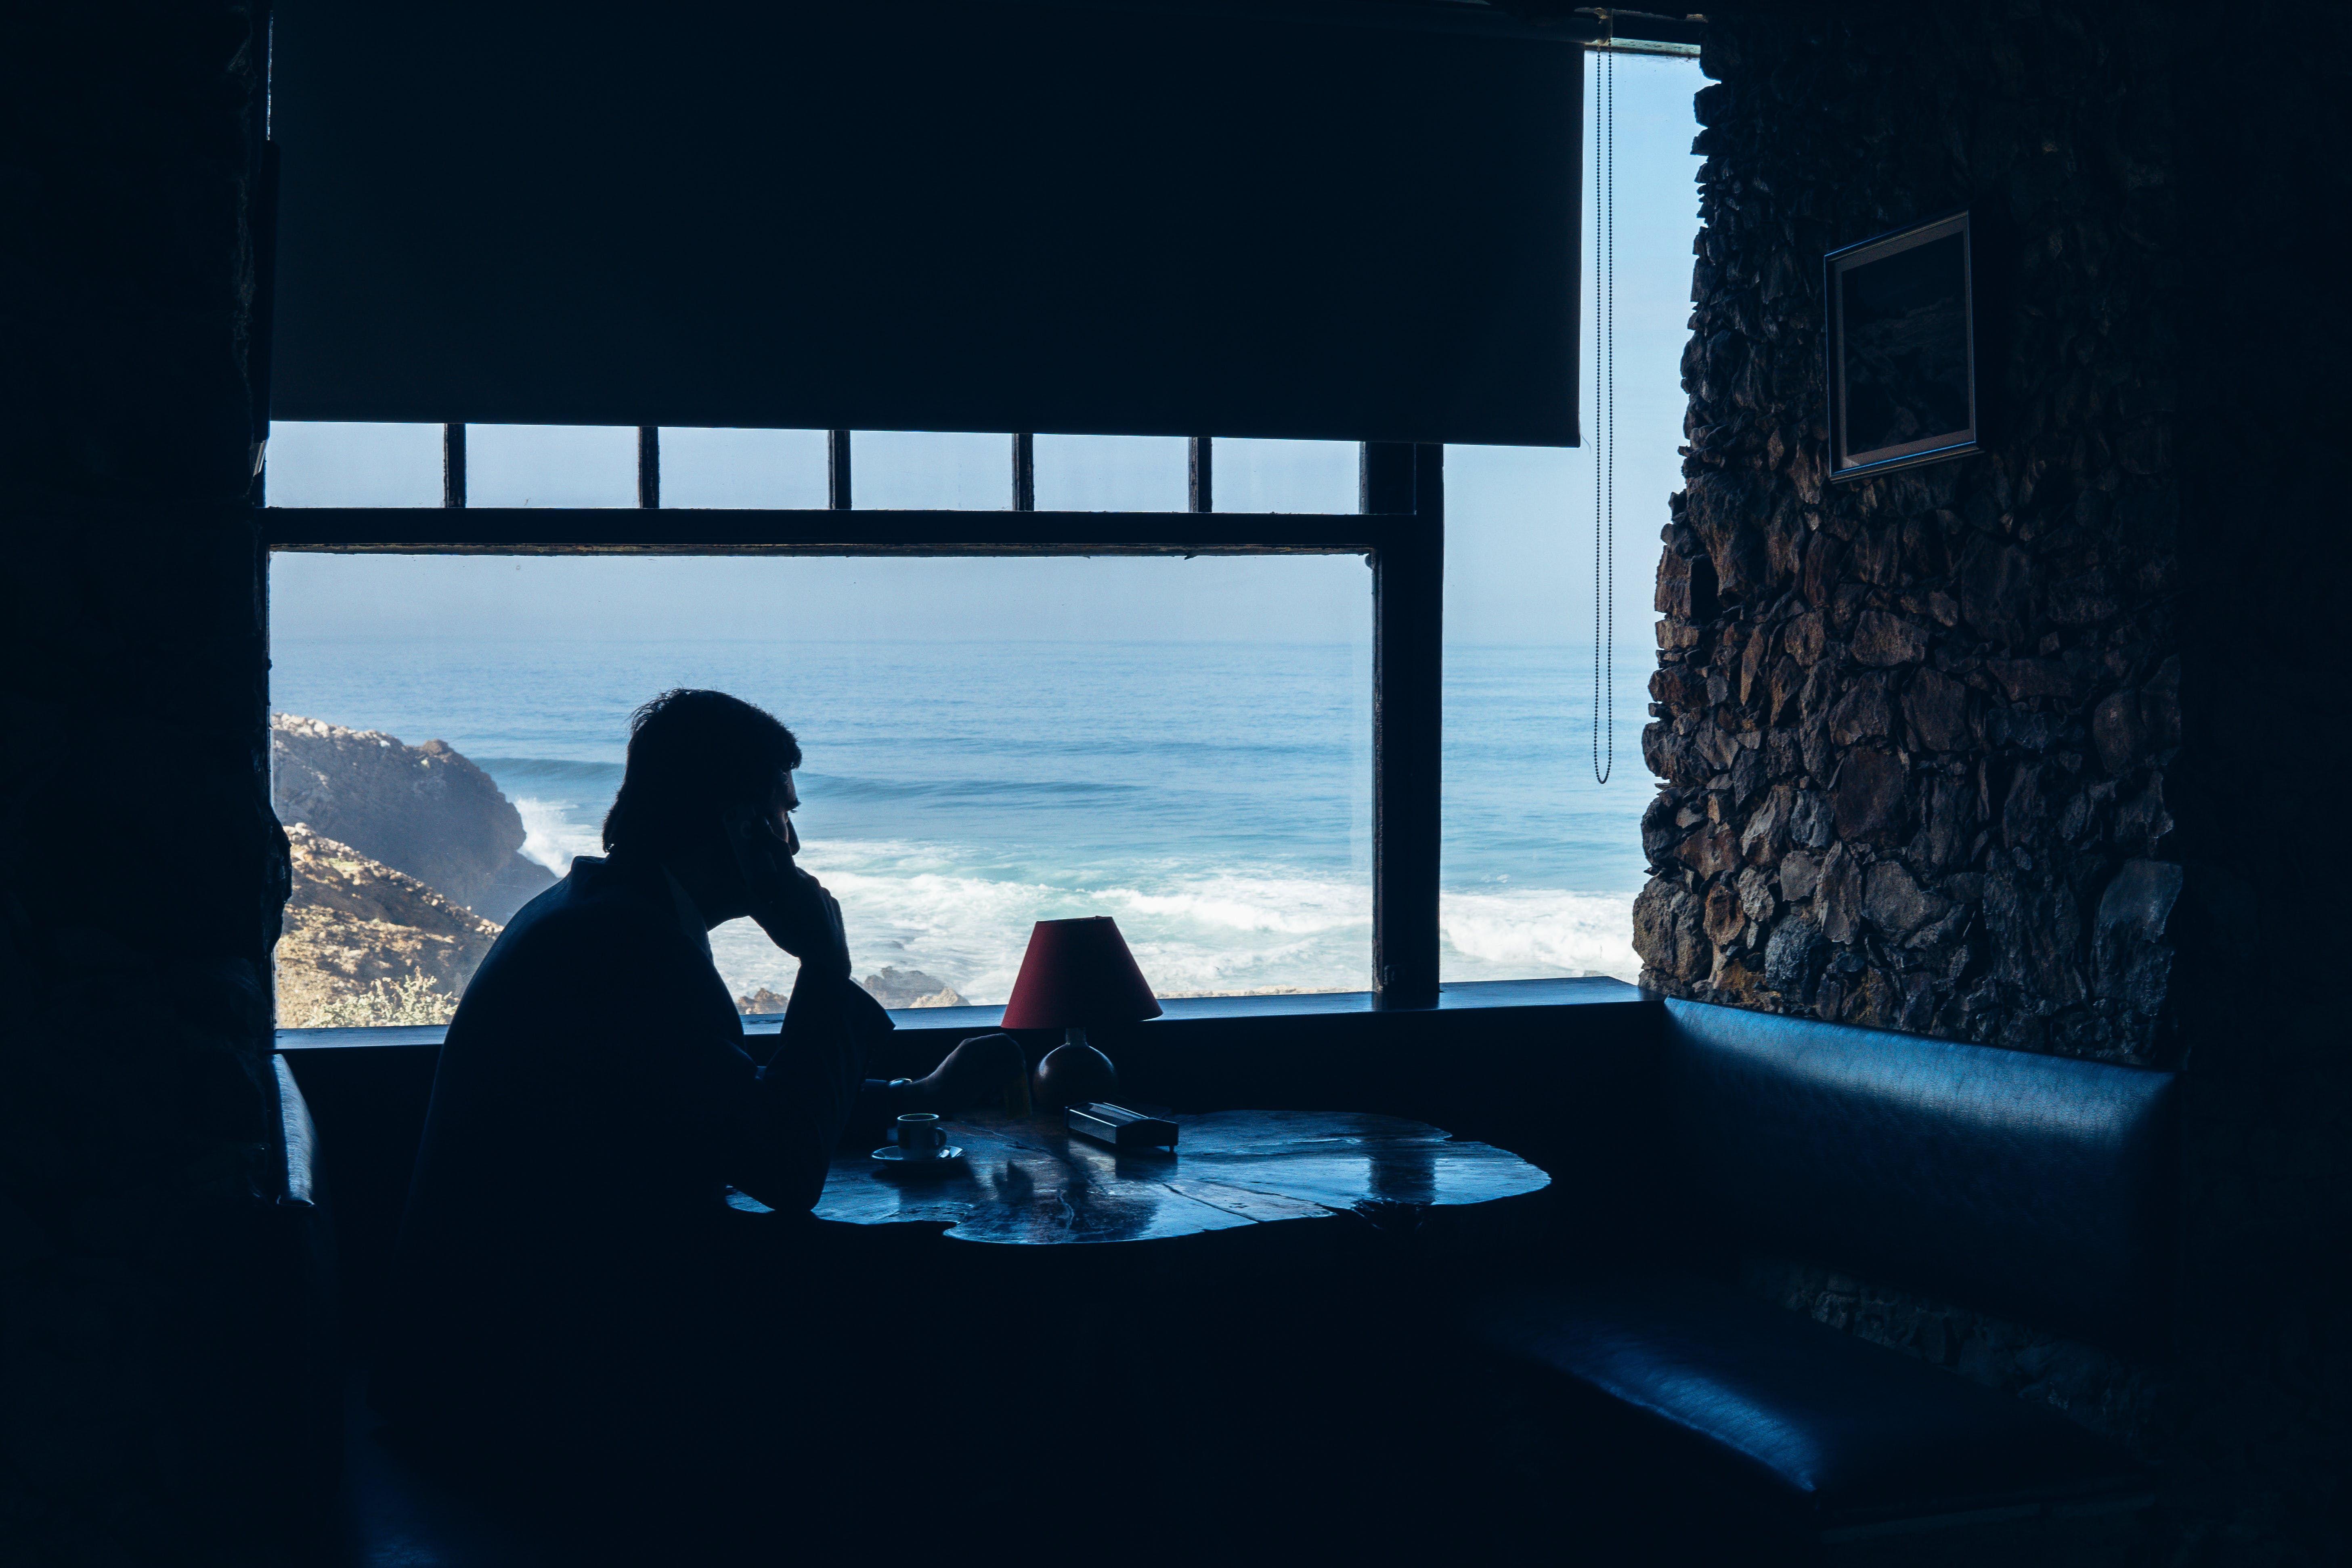 Silhouette of Man Sitting in Front of Table Beside Window